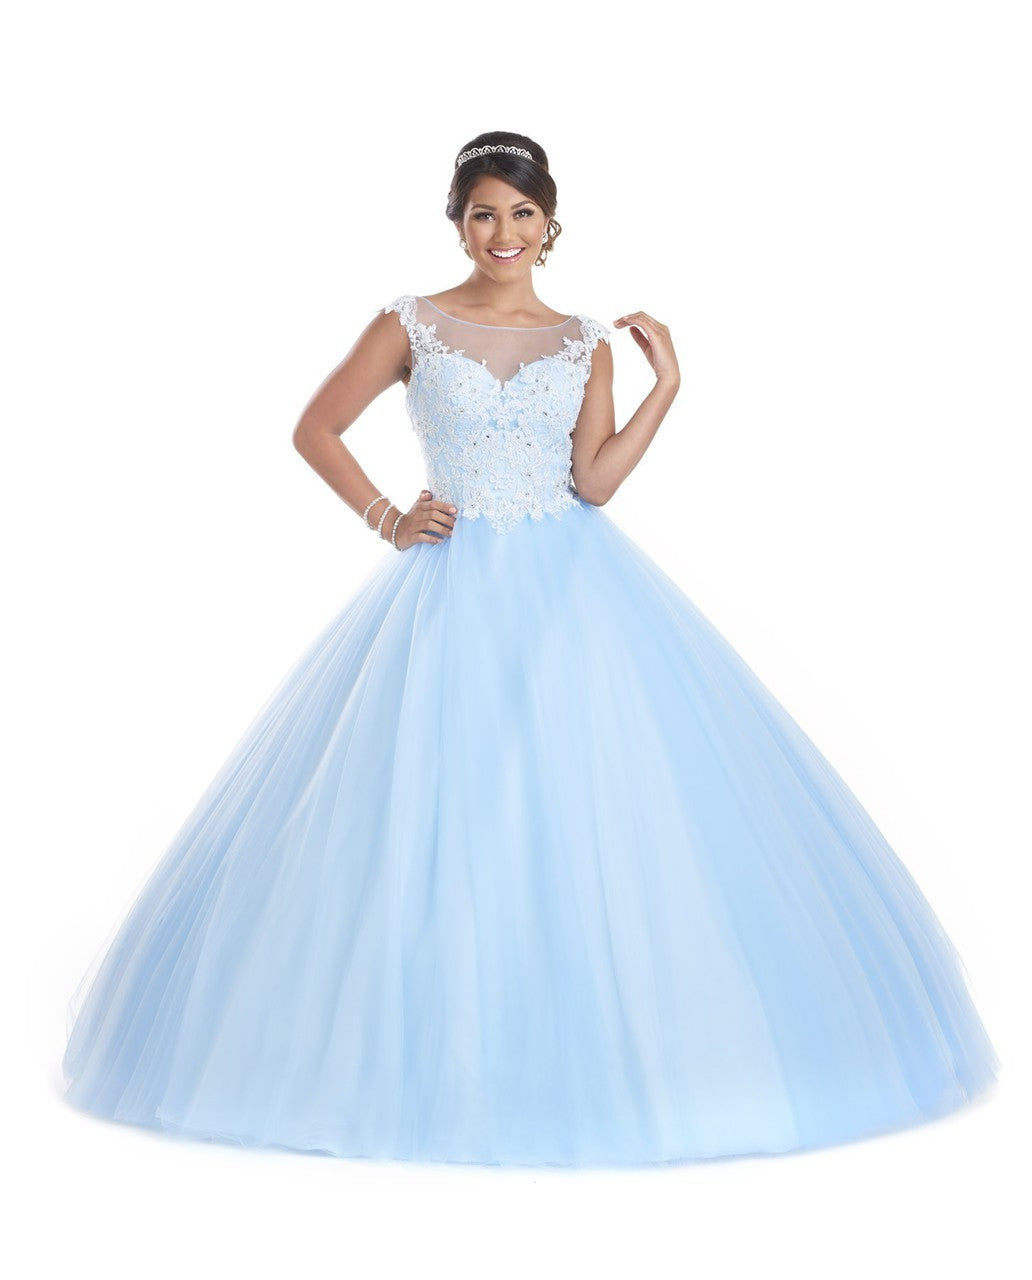 5603 Tulle cap sleeve illusion neckline with lace applique. Shawl included.